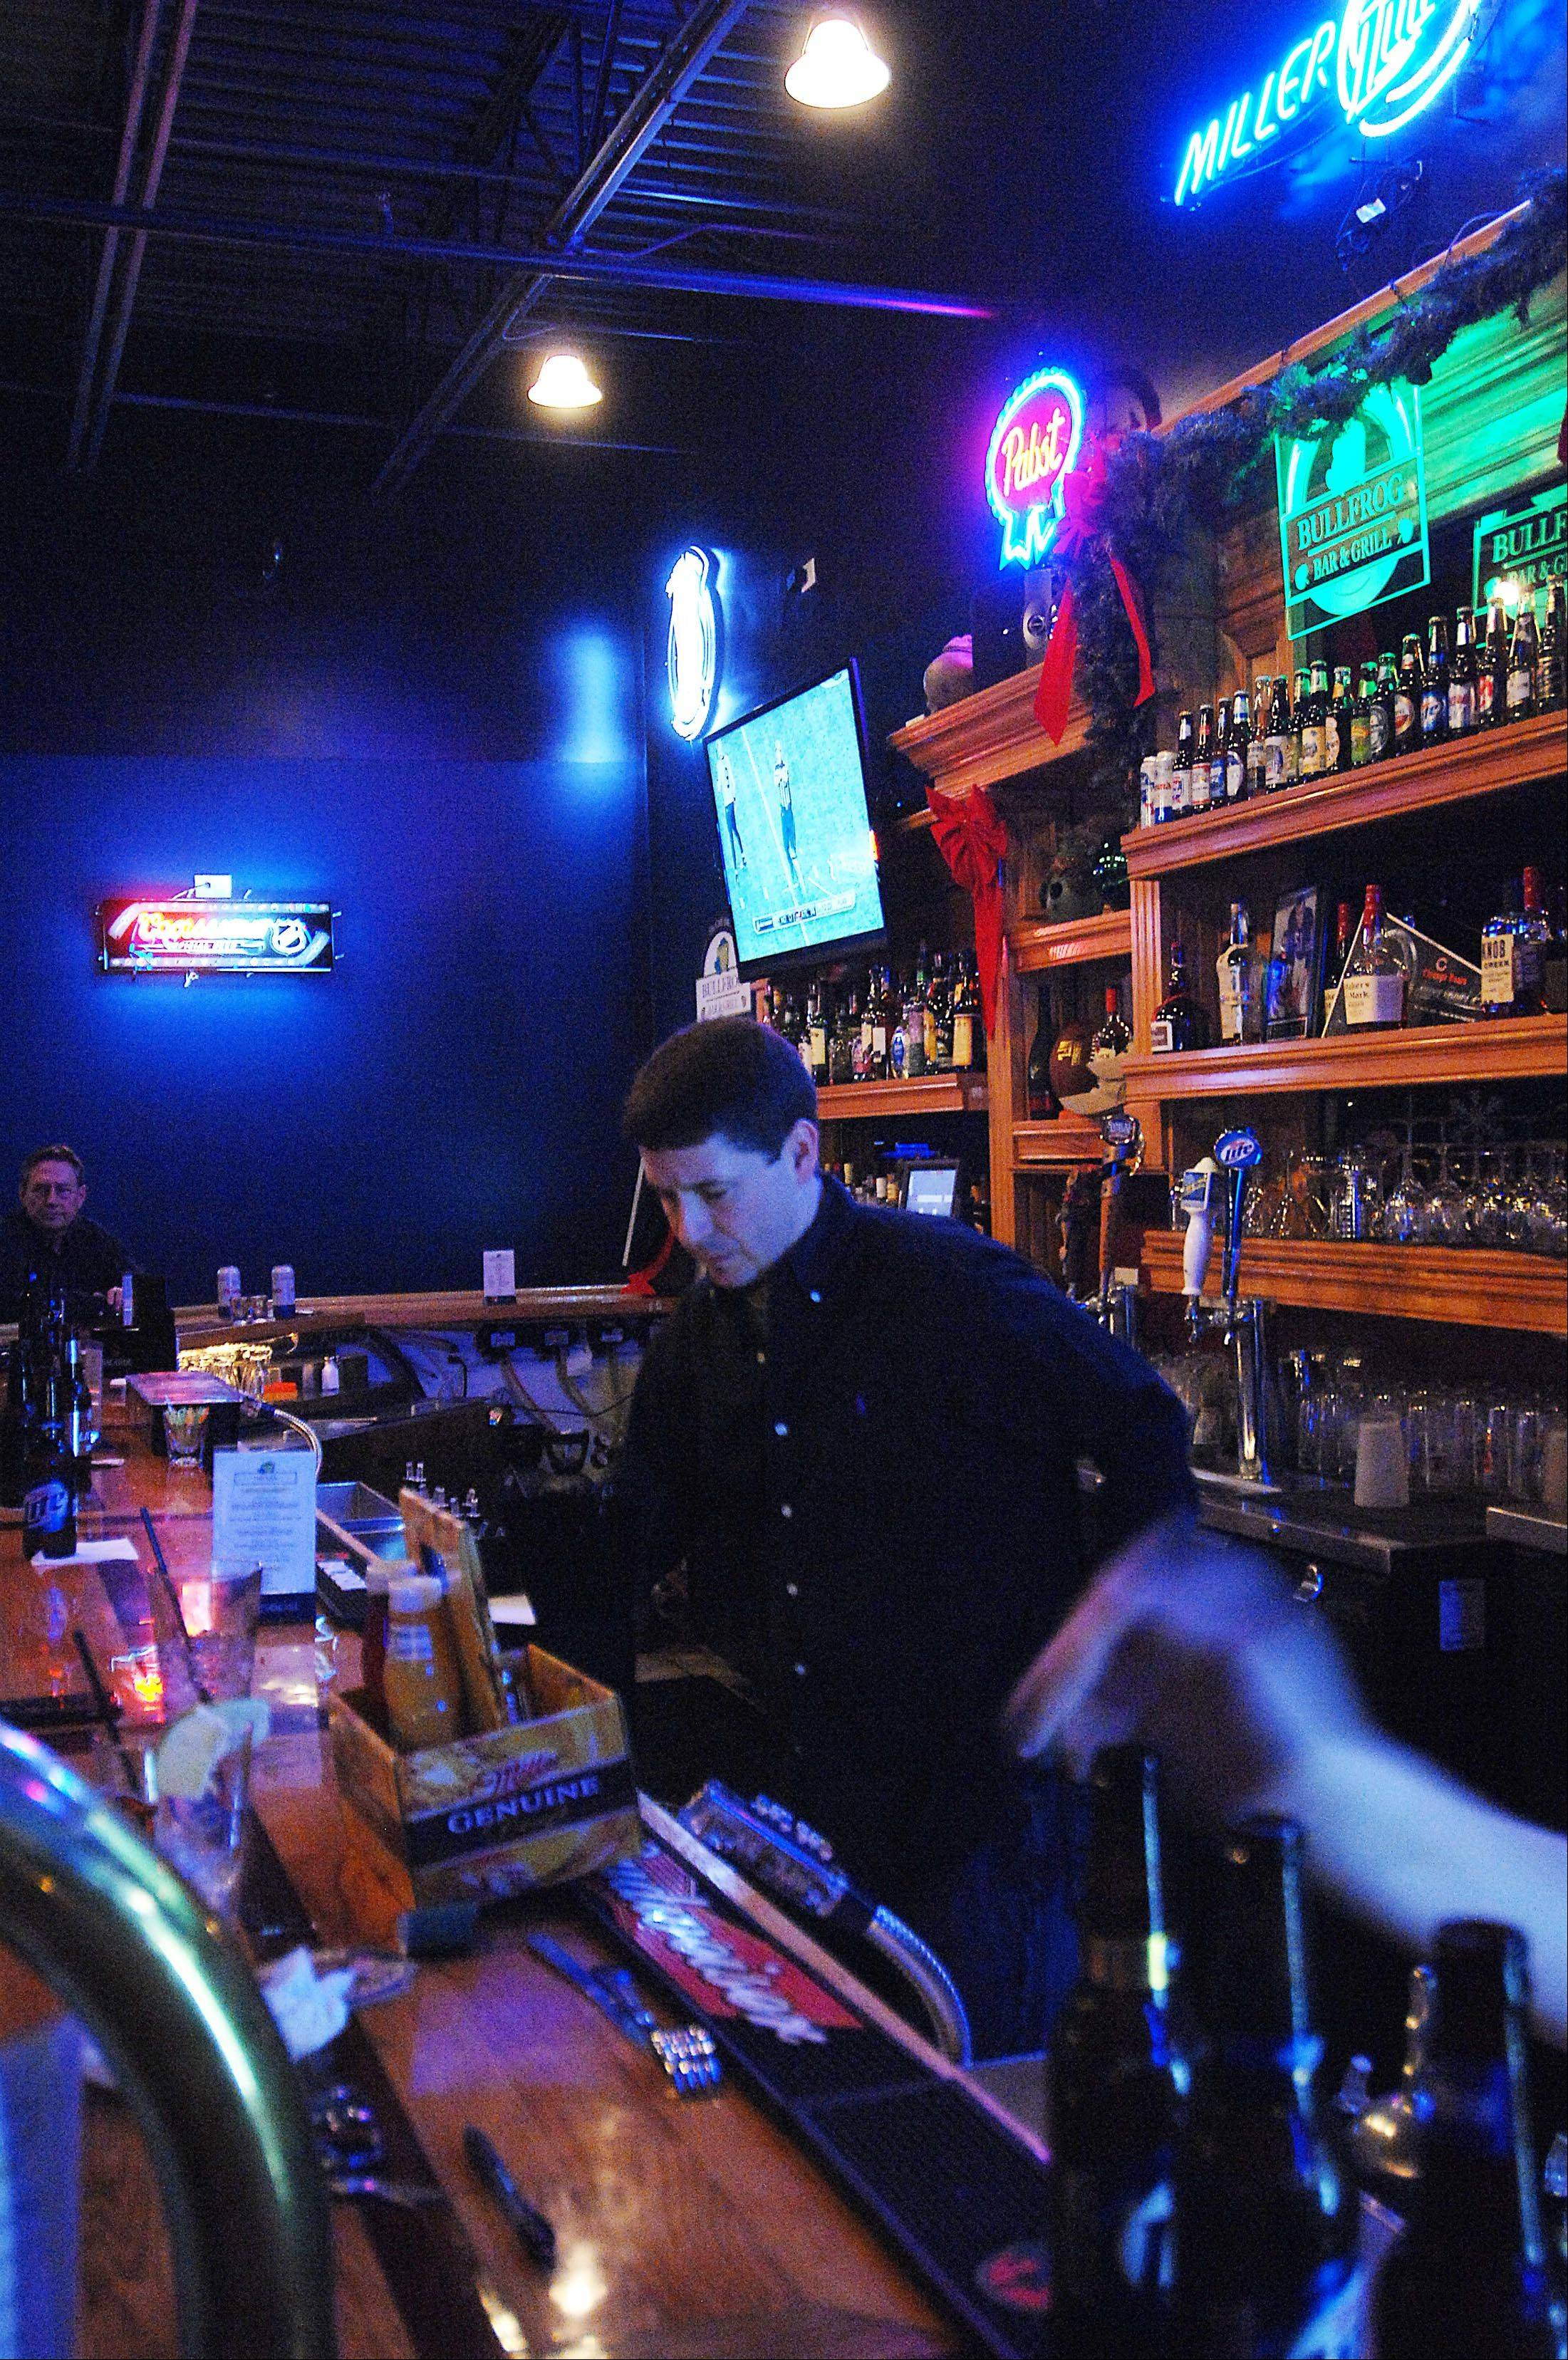 Mike Morrison pours drinks at The Chubby Bullfrog on Huntley Road in West Dundee.